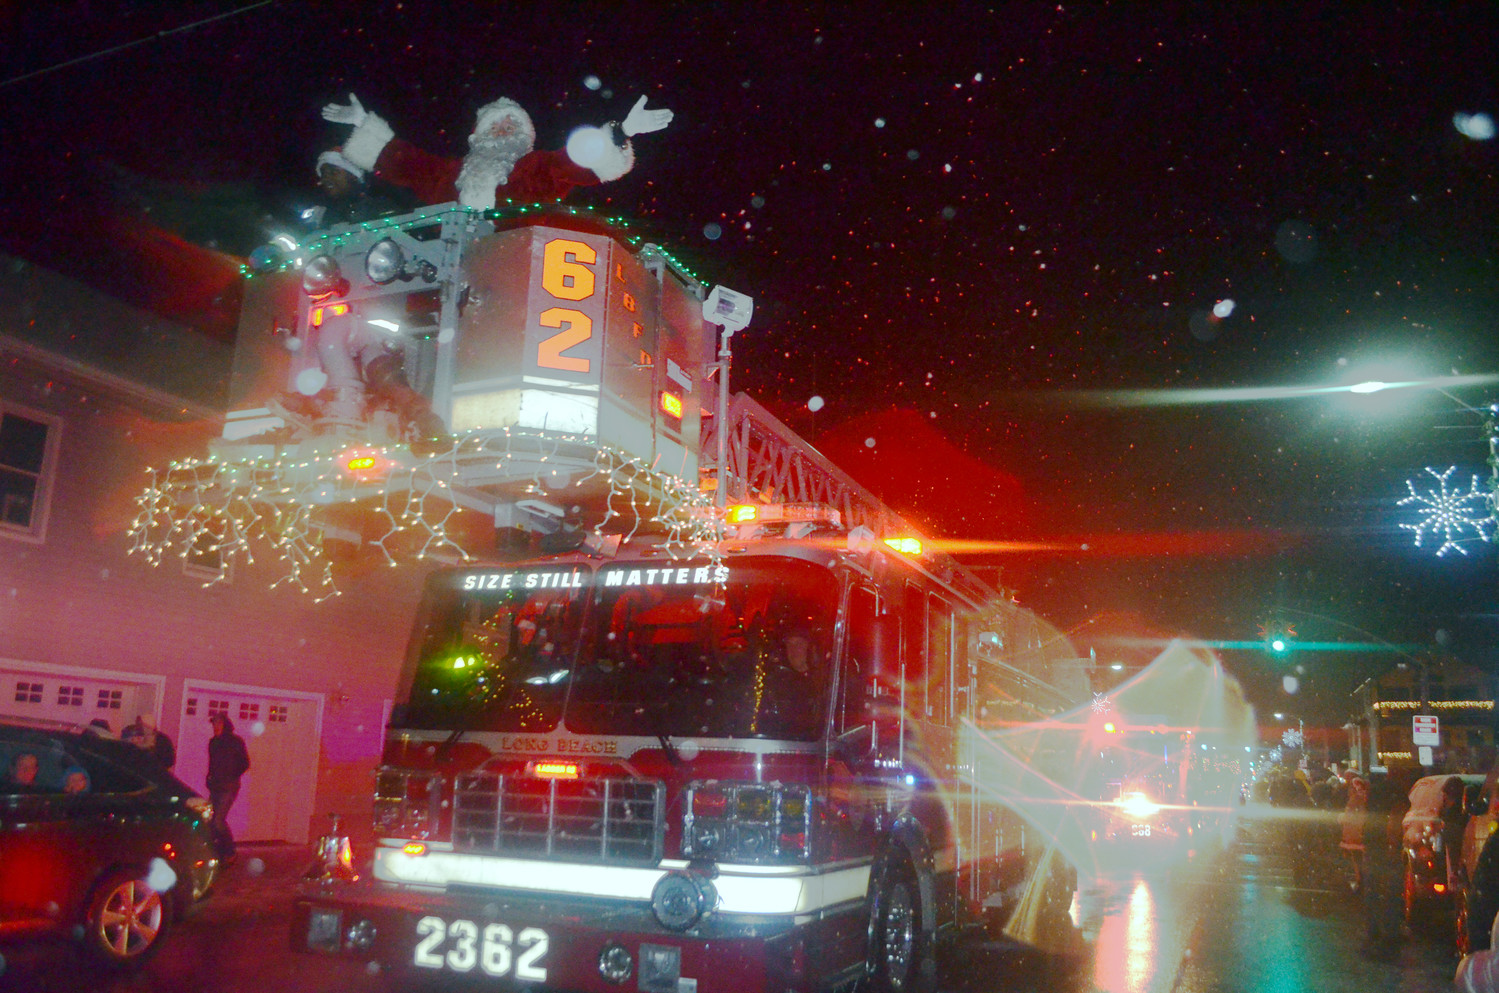 The Long Beach Fire Department was joined by Santa Claus as he waved to onlookers at the fifth annual Long Beach Electric Light Parade on Saturday.